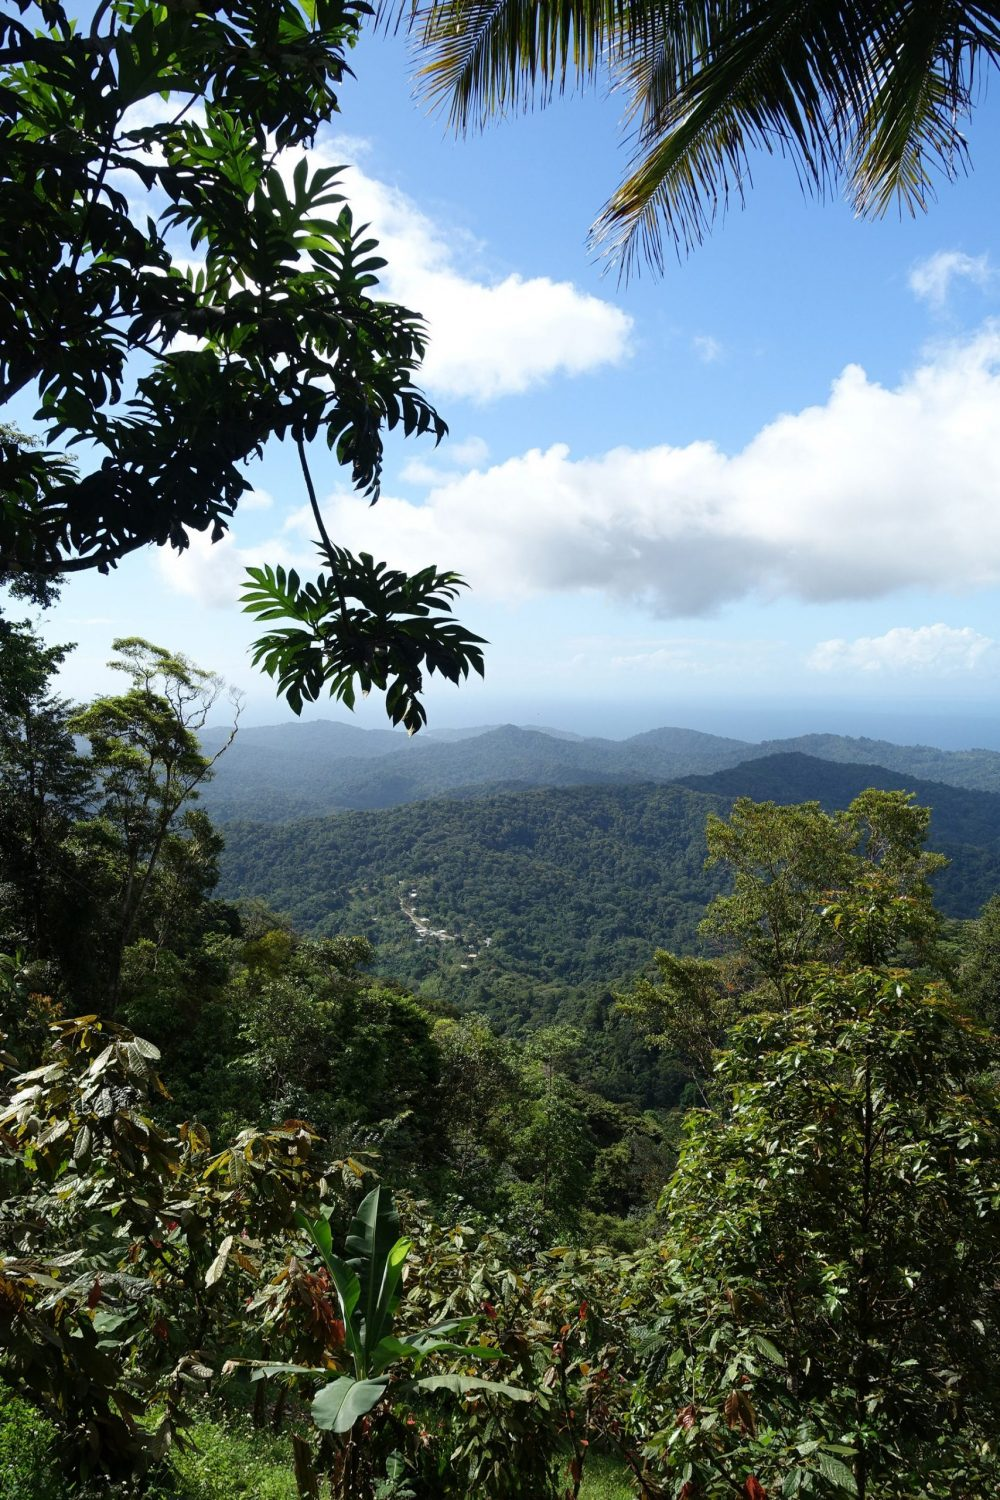 The Northern Range Mountains of Trinidad cocoa trees - Research News Scotland